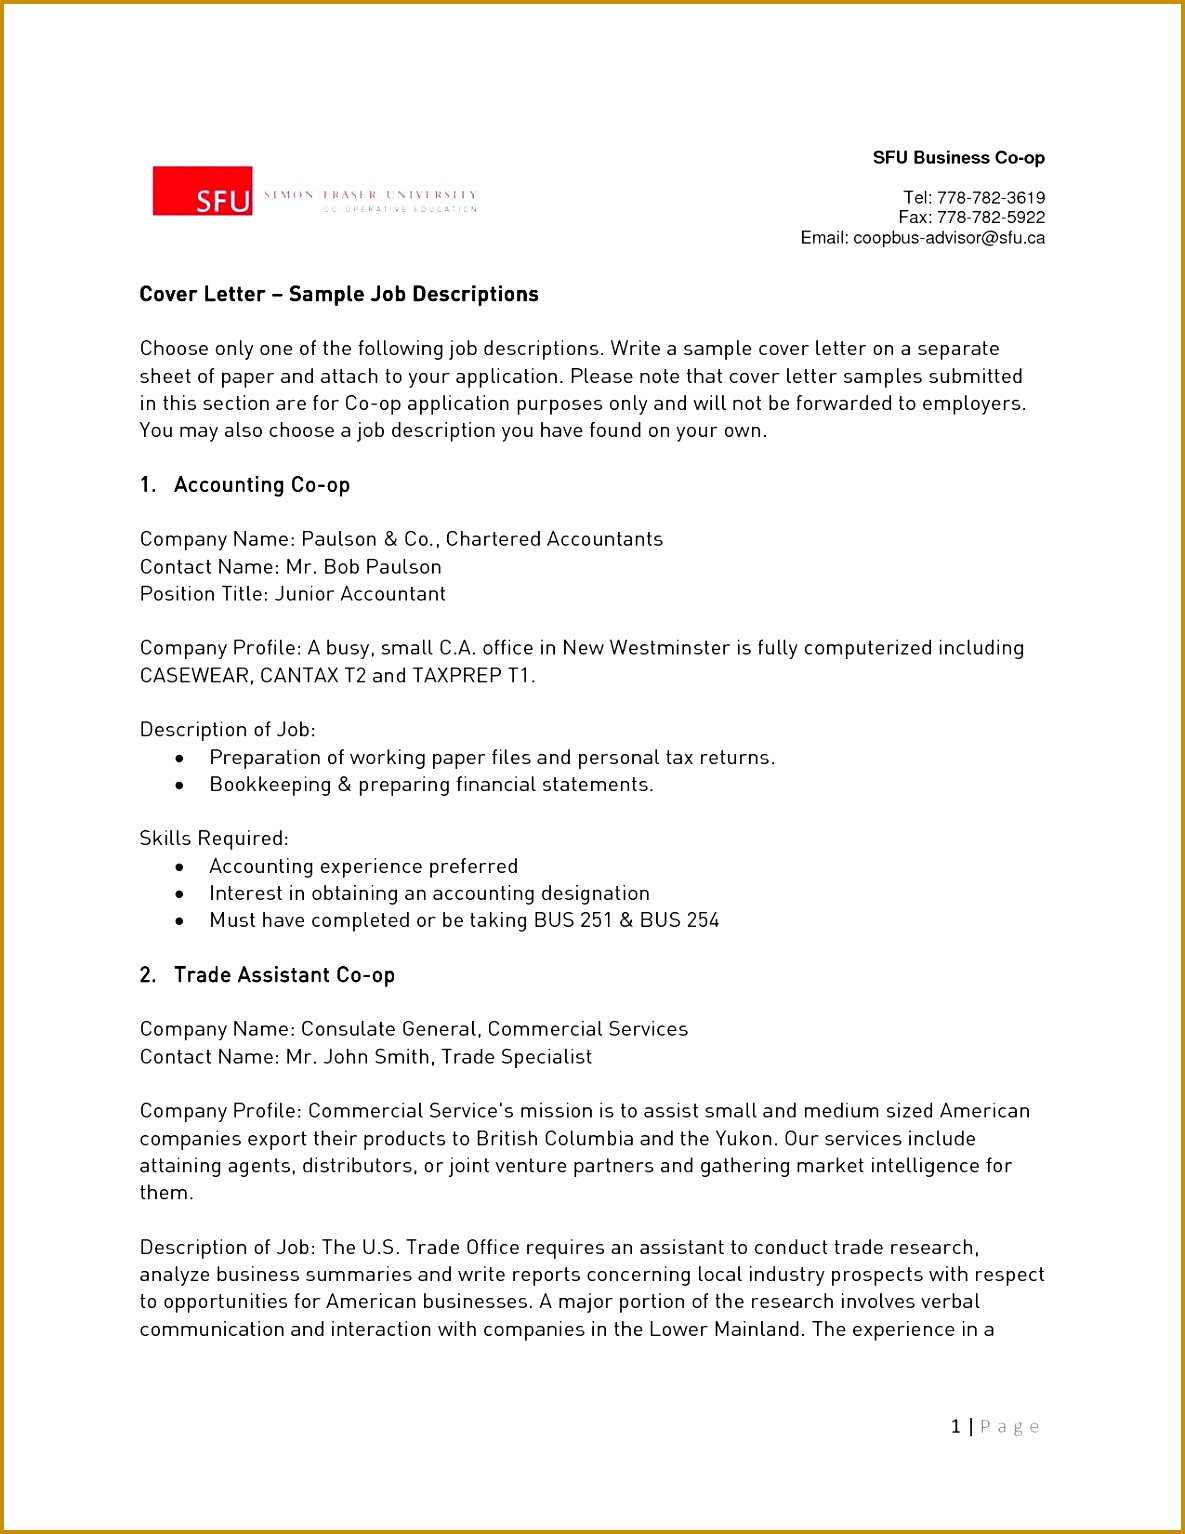 Beautiful Resume Cover Letter Examples Luxury Resume and Cover Letter Examples Resume and Cover Letter Examples 11851534